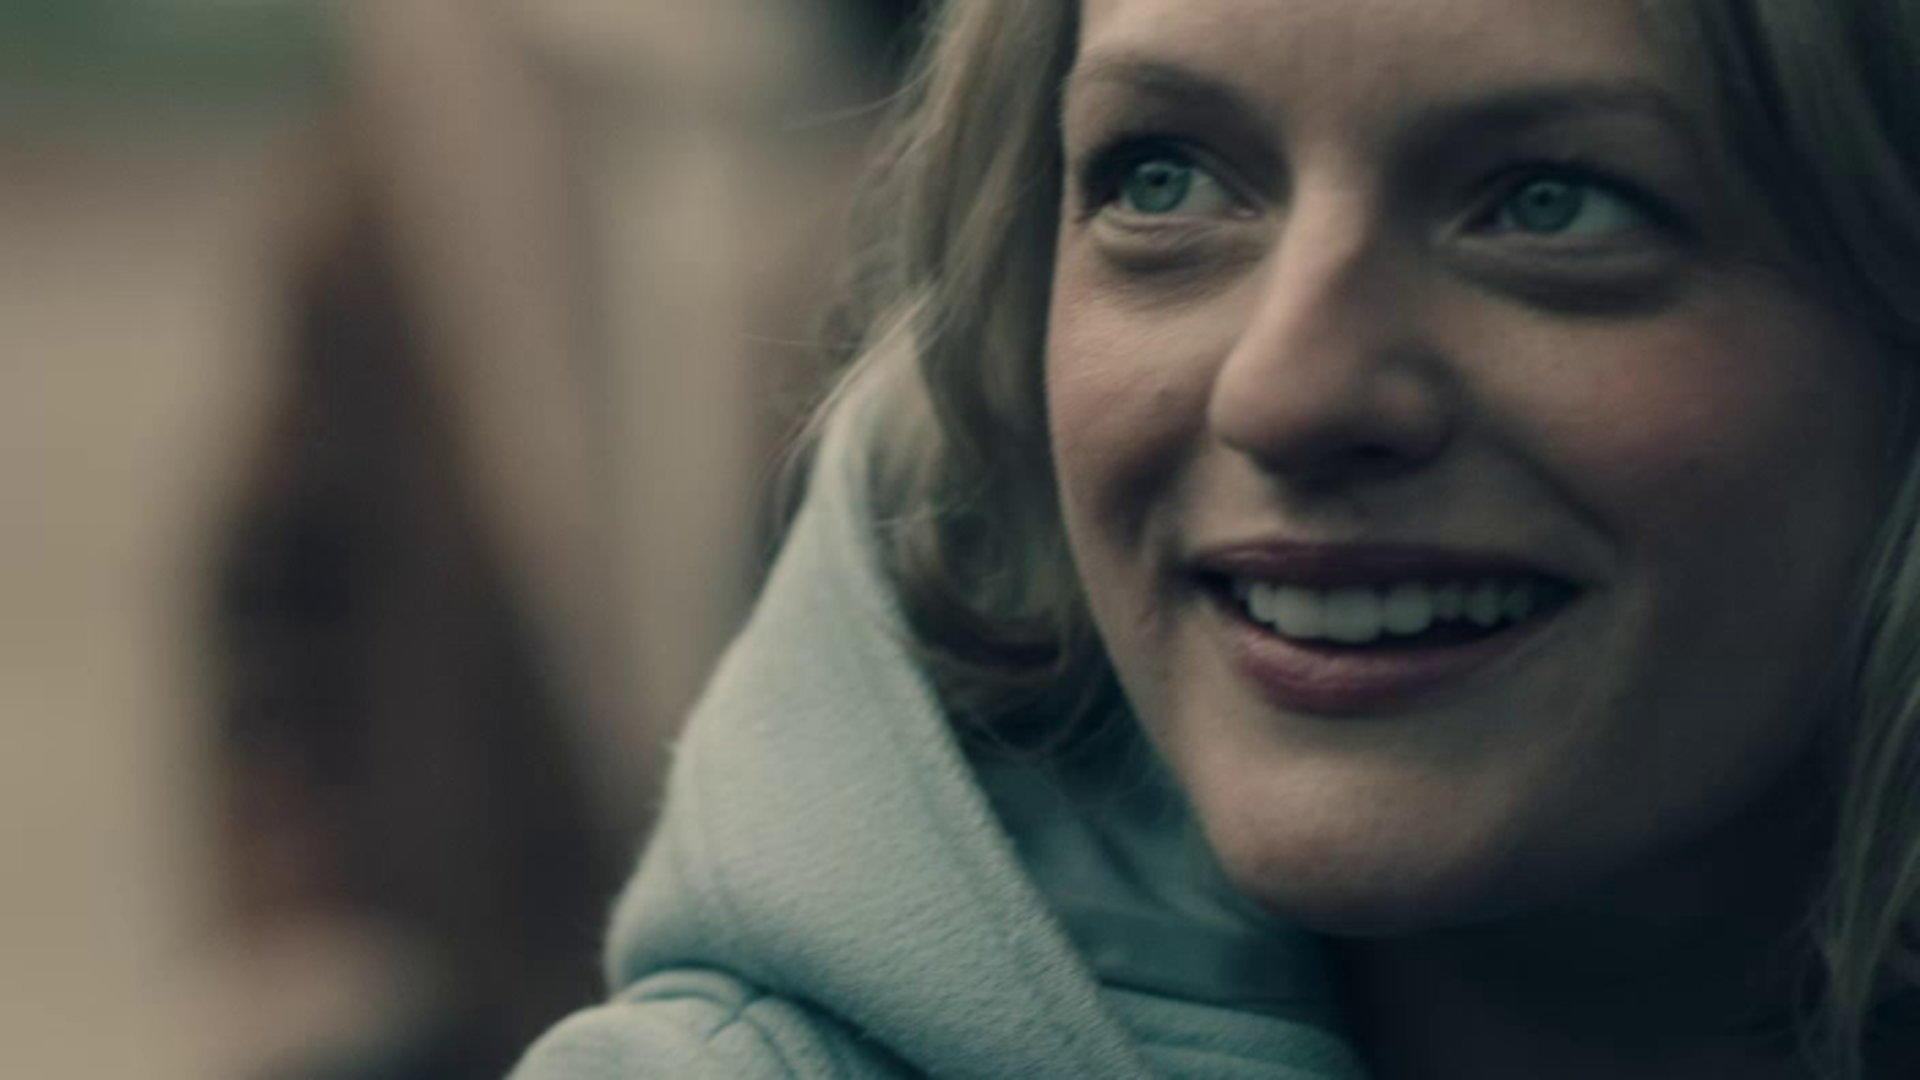 Faithful Summary - The Handmaid's Tale Season 1, Episode 5 Episode Guide